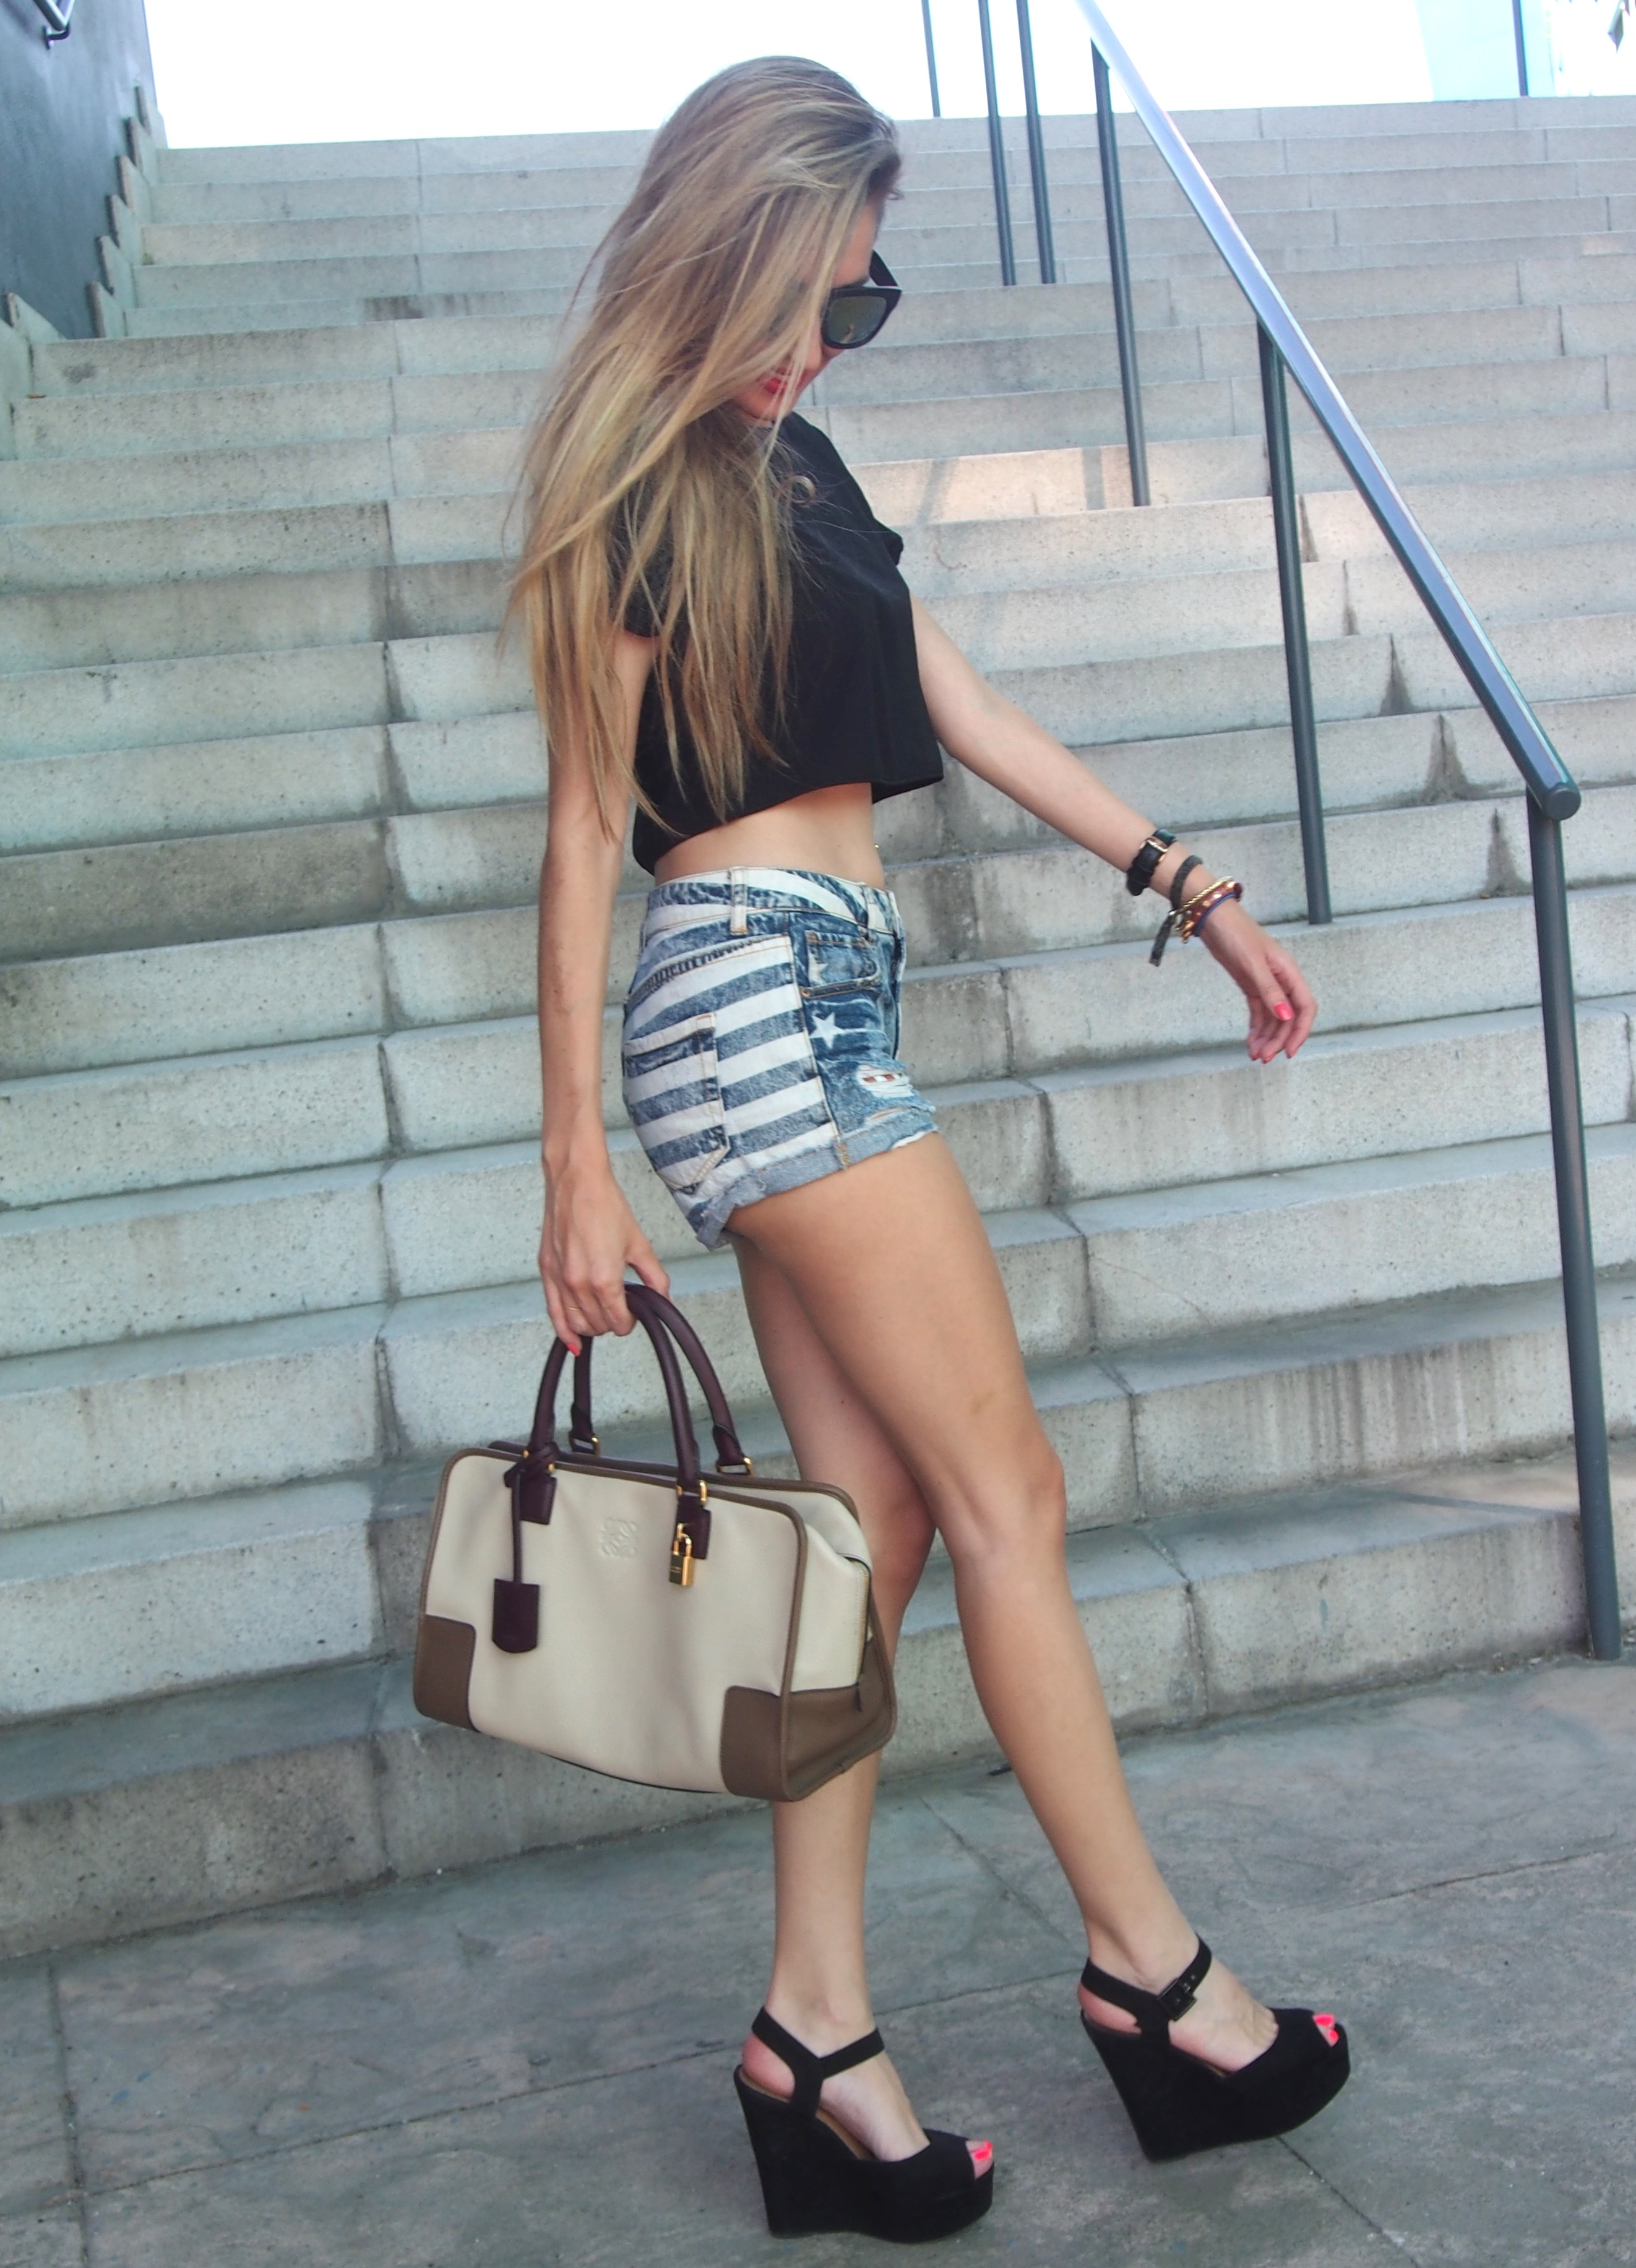 Shorts_Cropped_Top_Platforms_Mirror_Sunnies_Amazona_Bag_Loewe